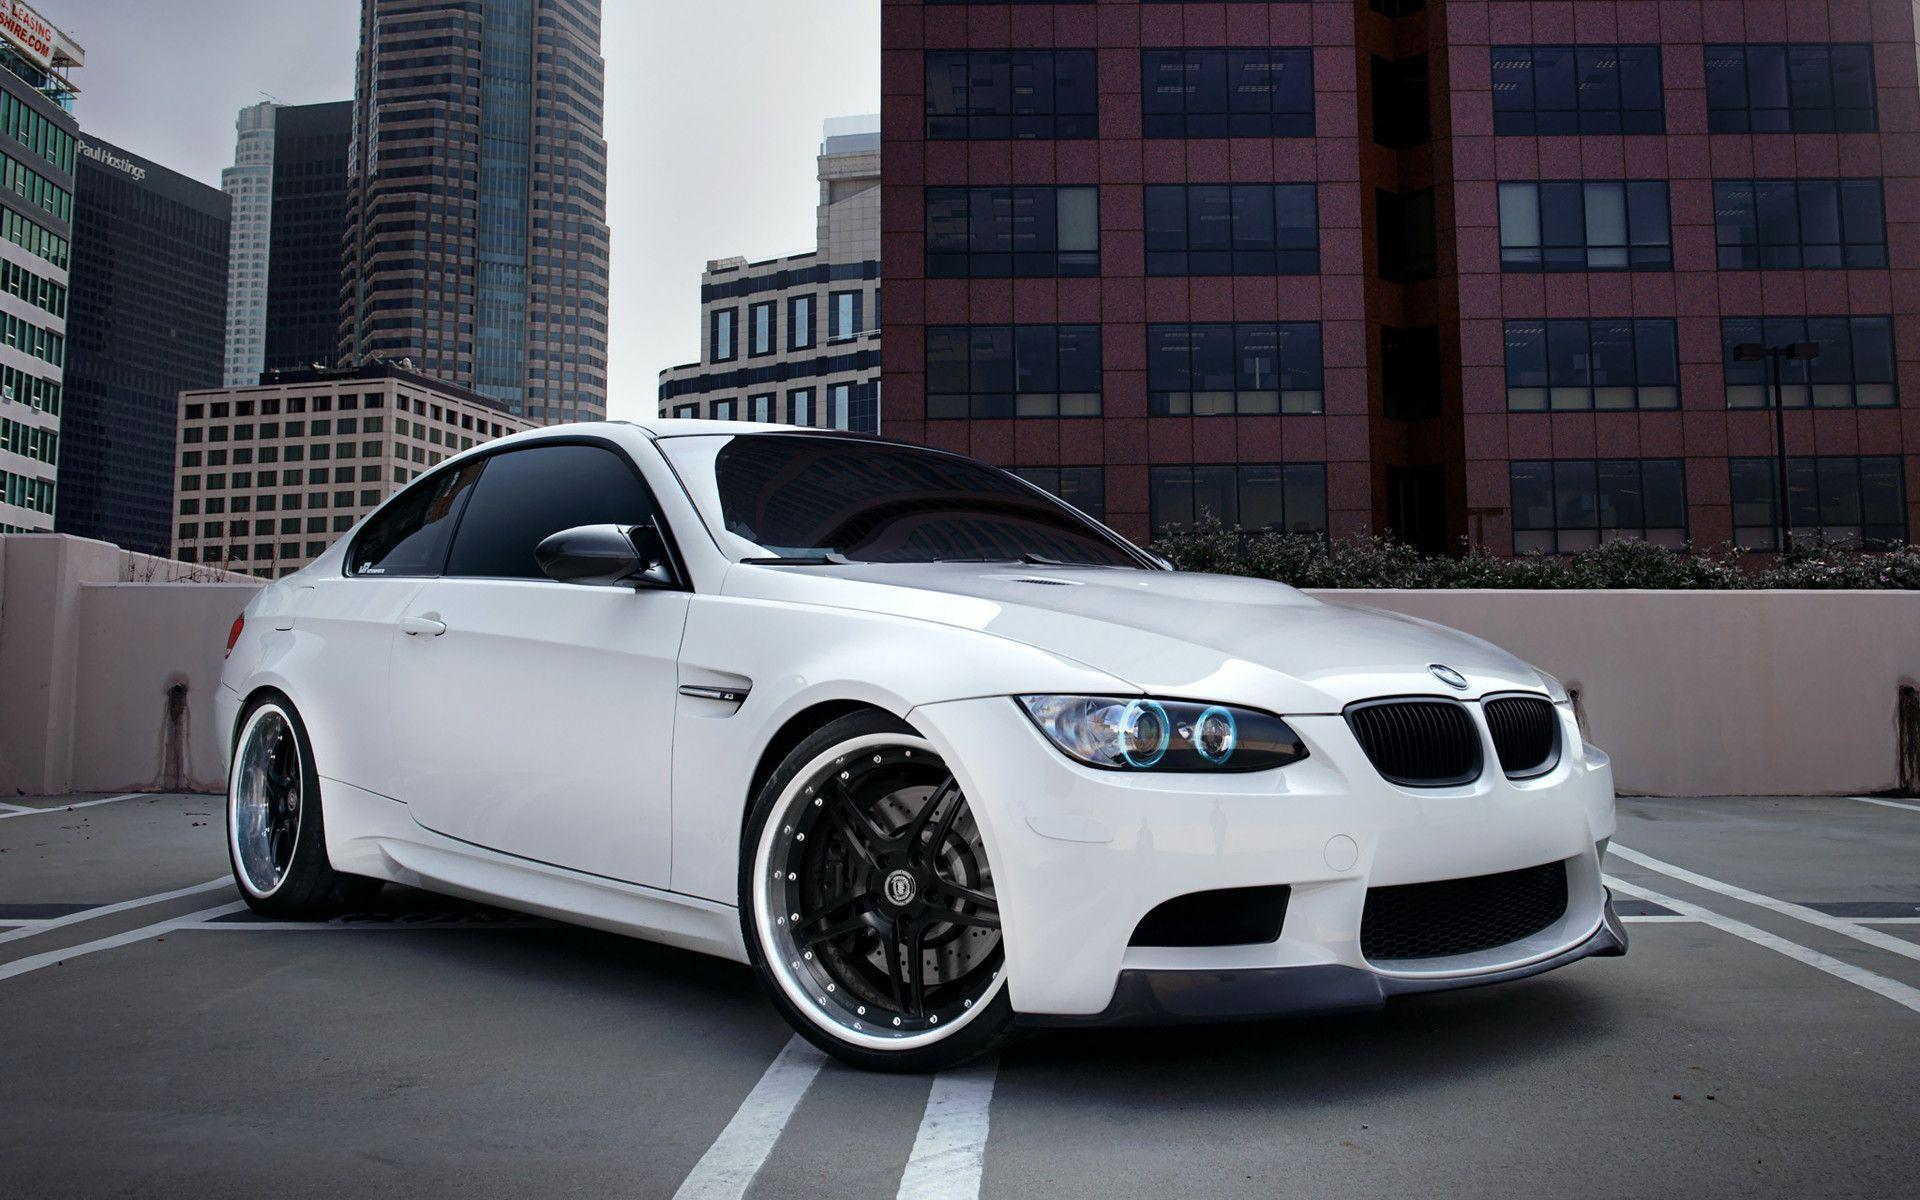 BMW M3 Series Wallpapers